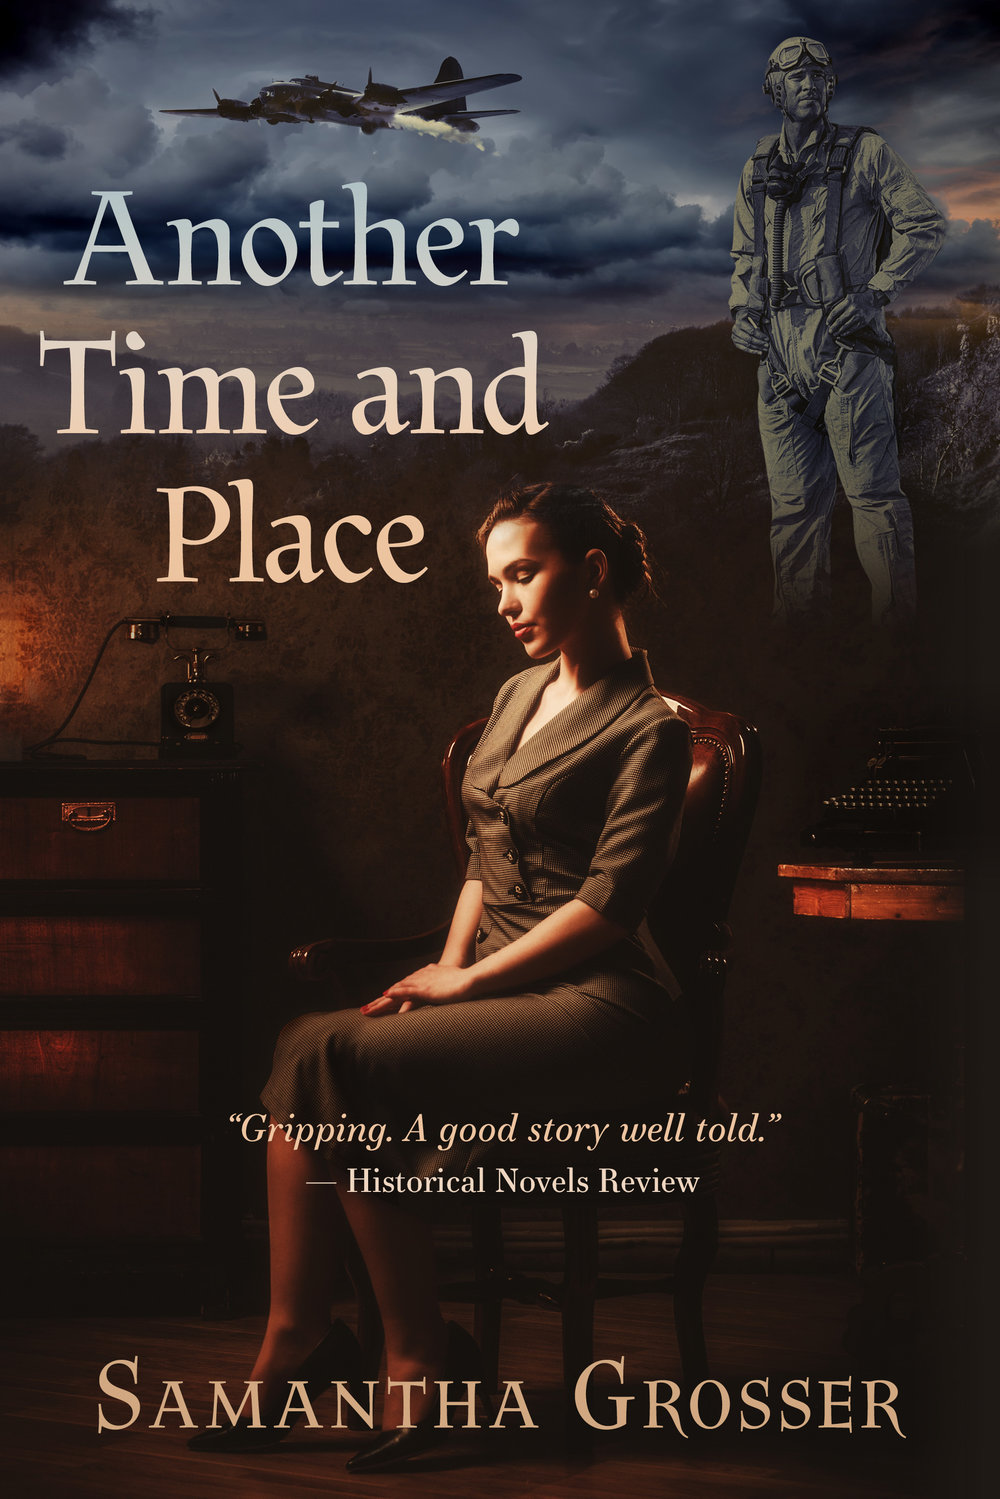 Another Time and Place_cover_03.jpg